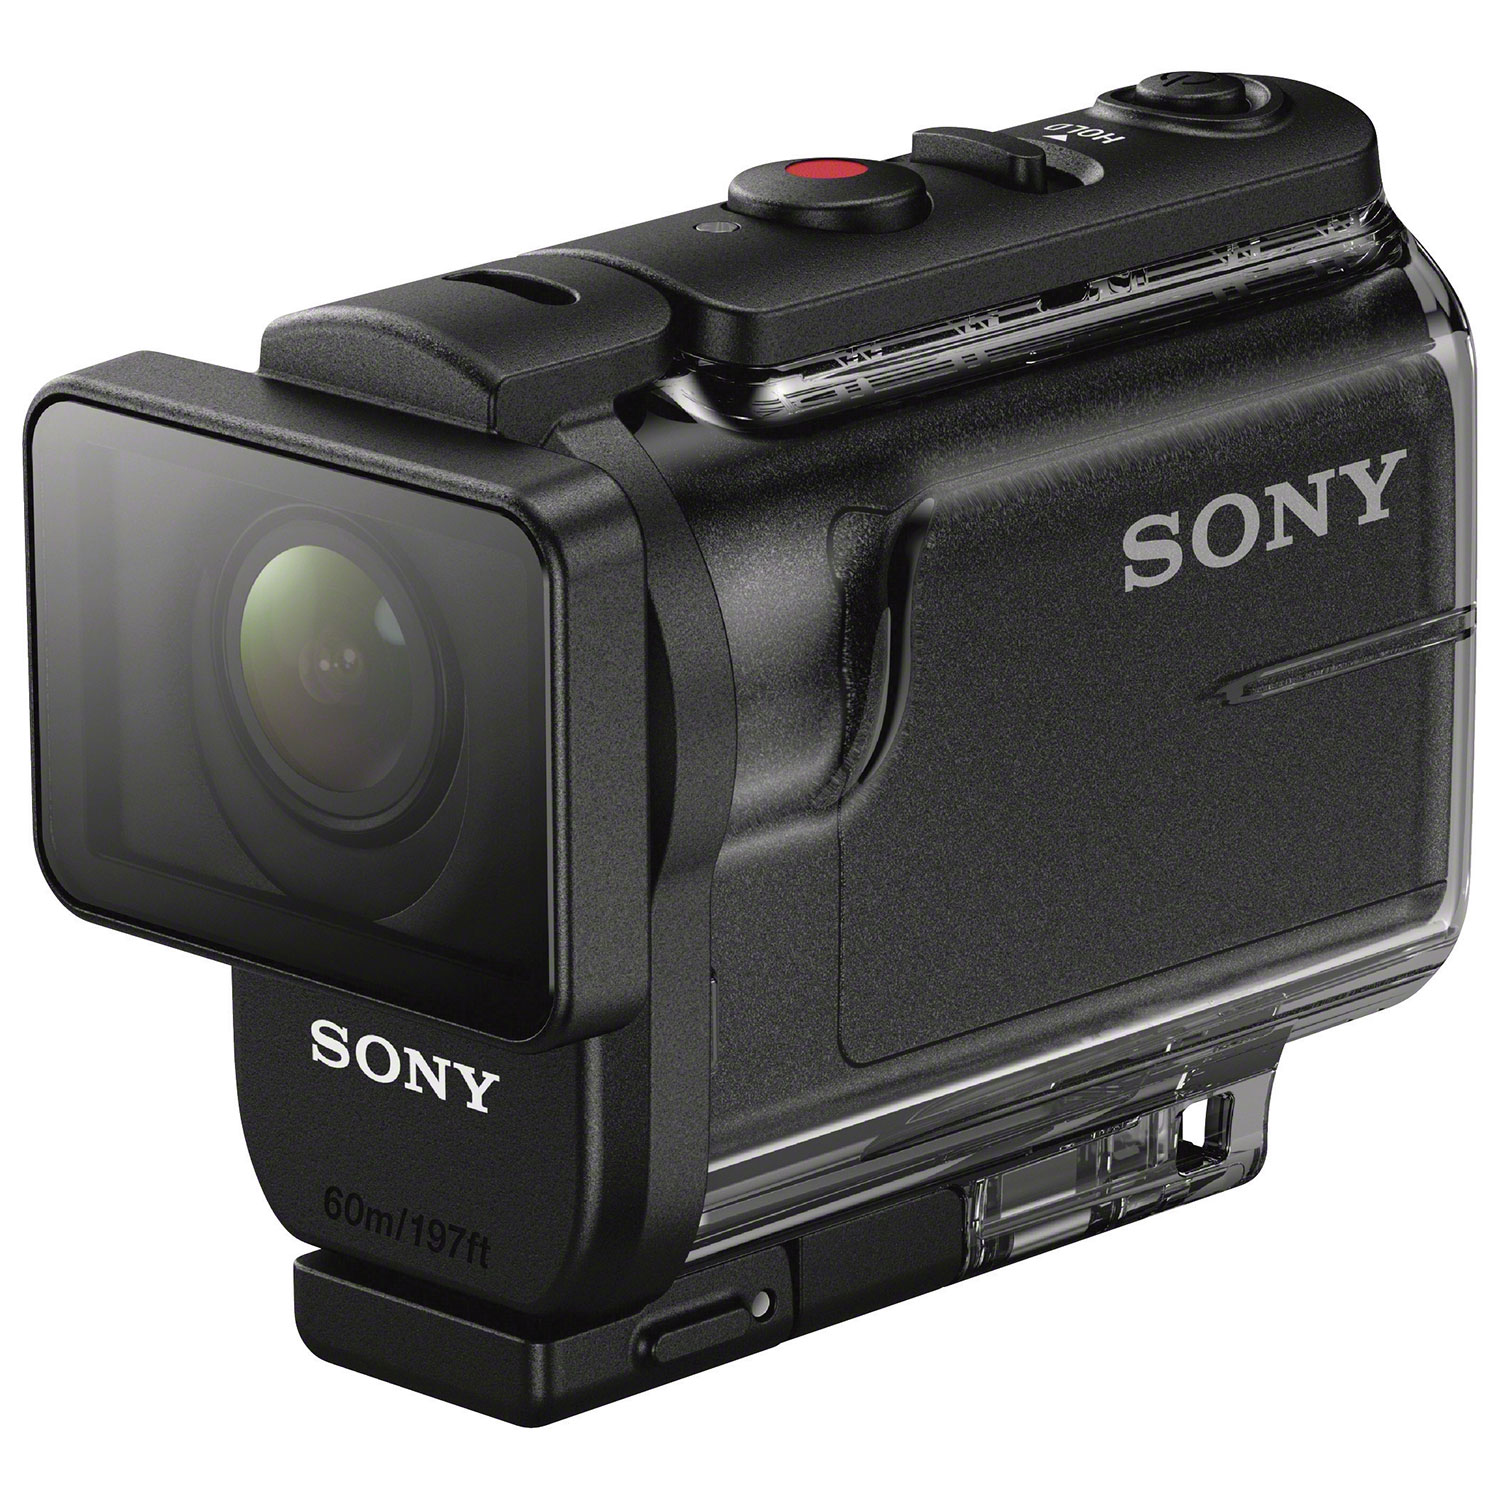 Image result for Sony HDR-AS50